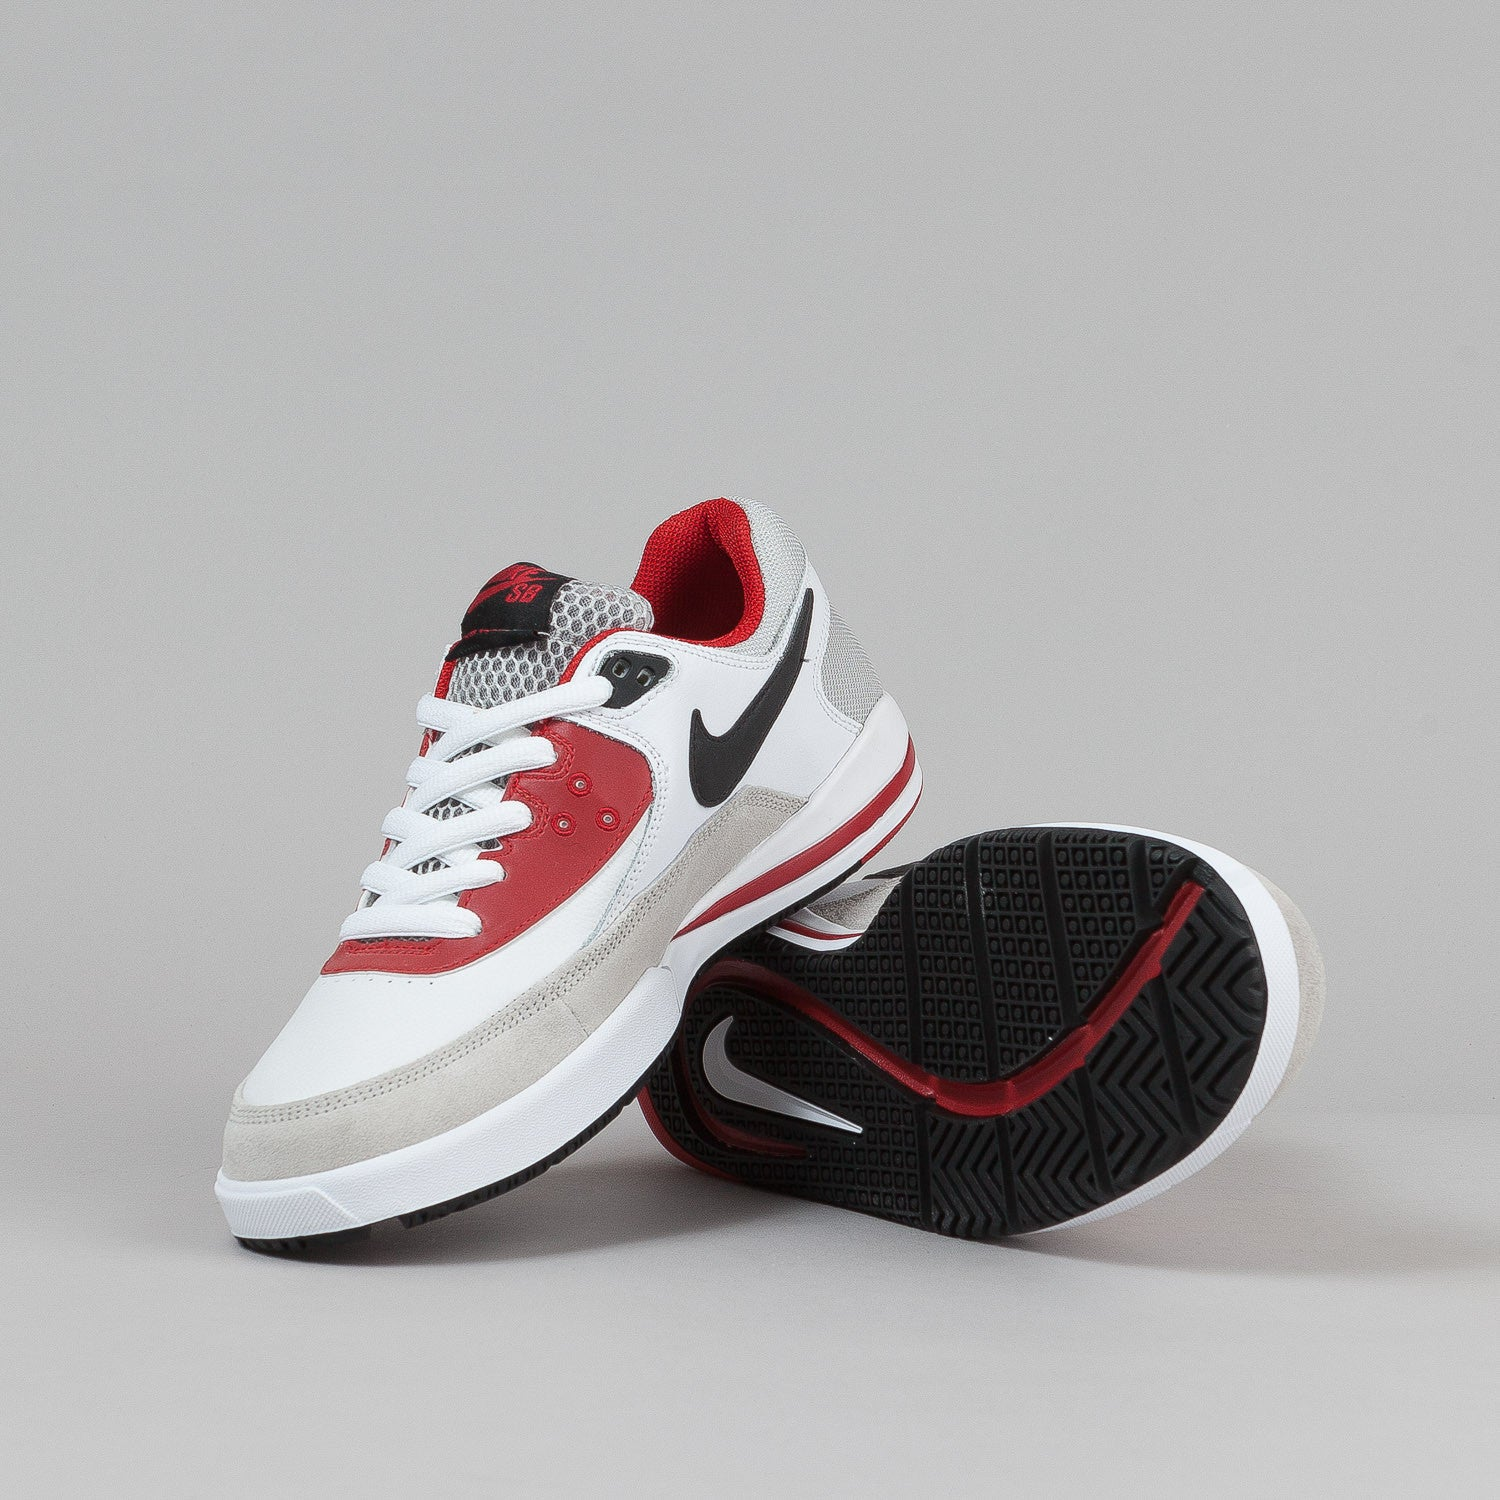 Nike SB Zoom Veloce Shoes - White / Black